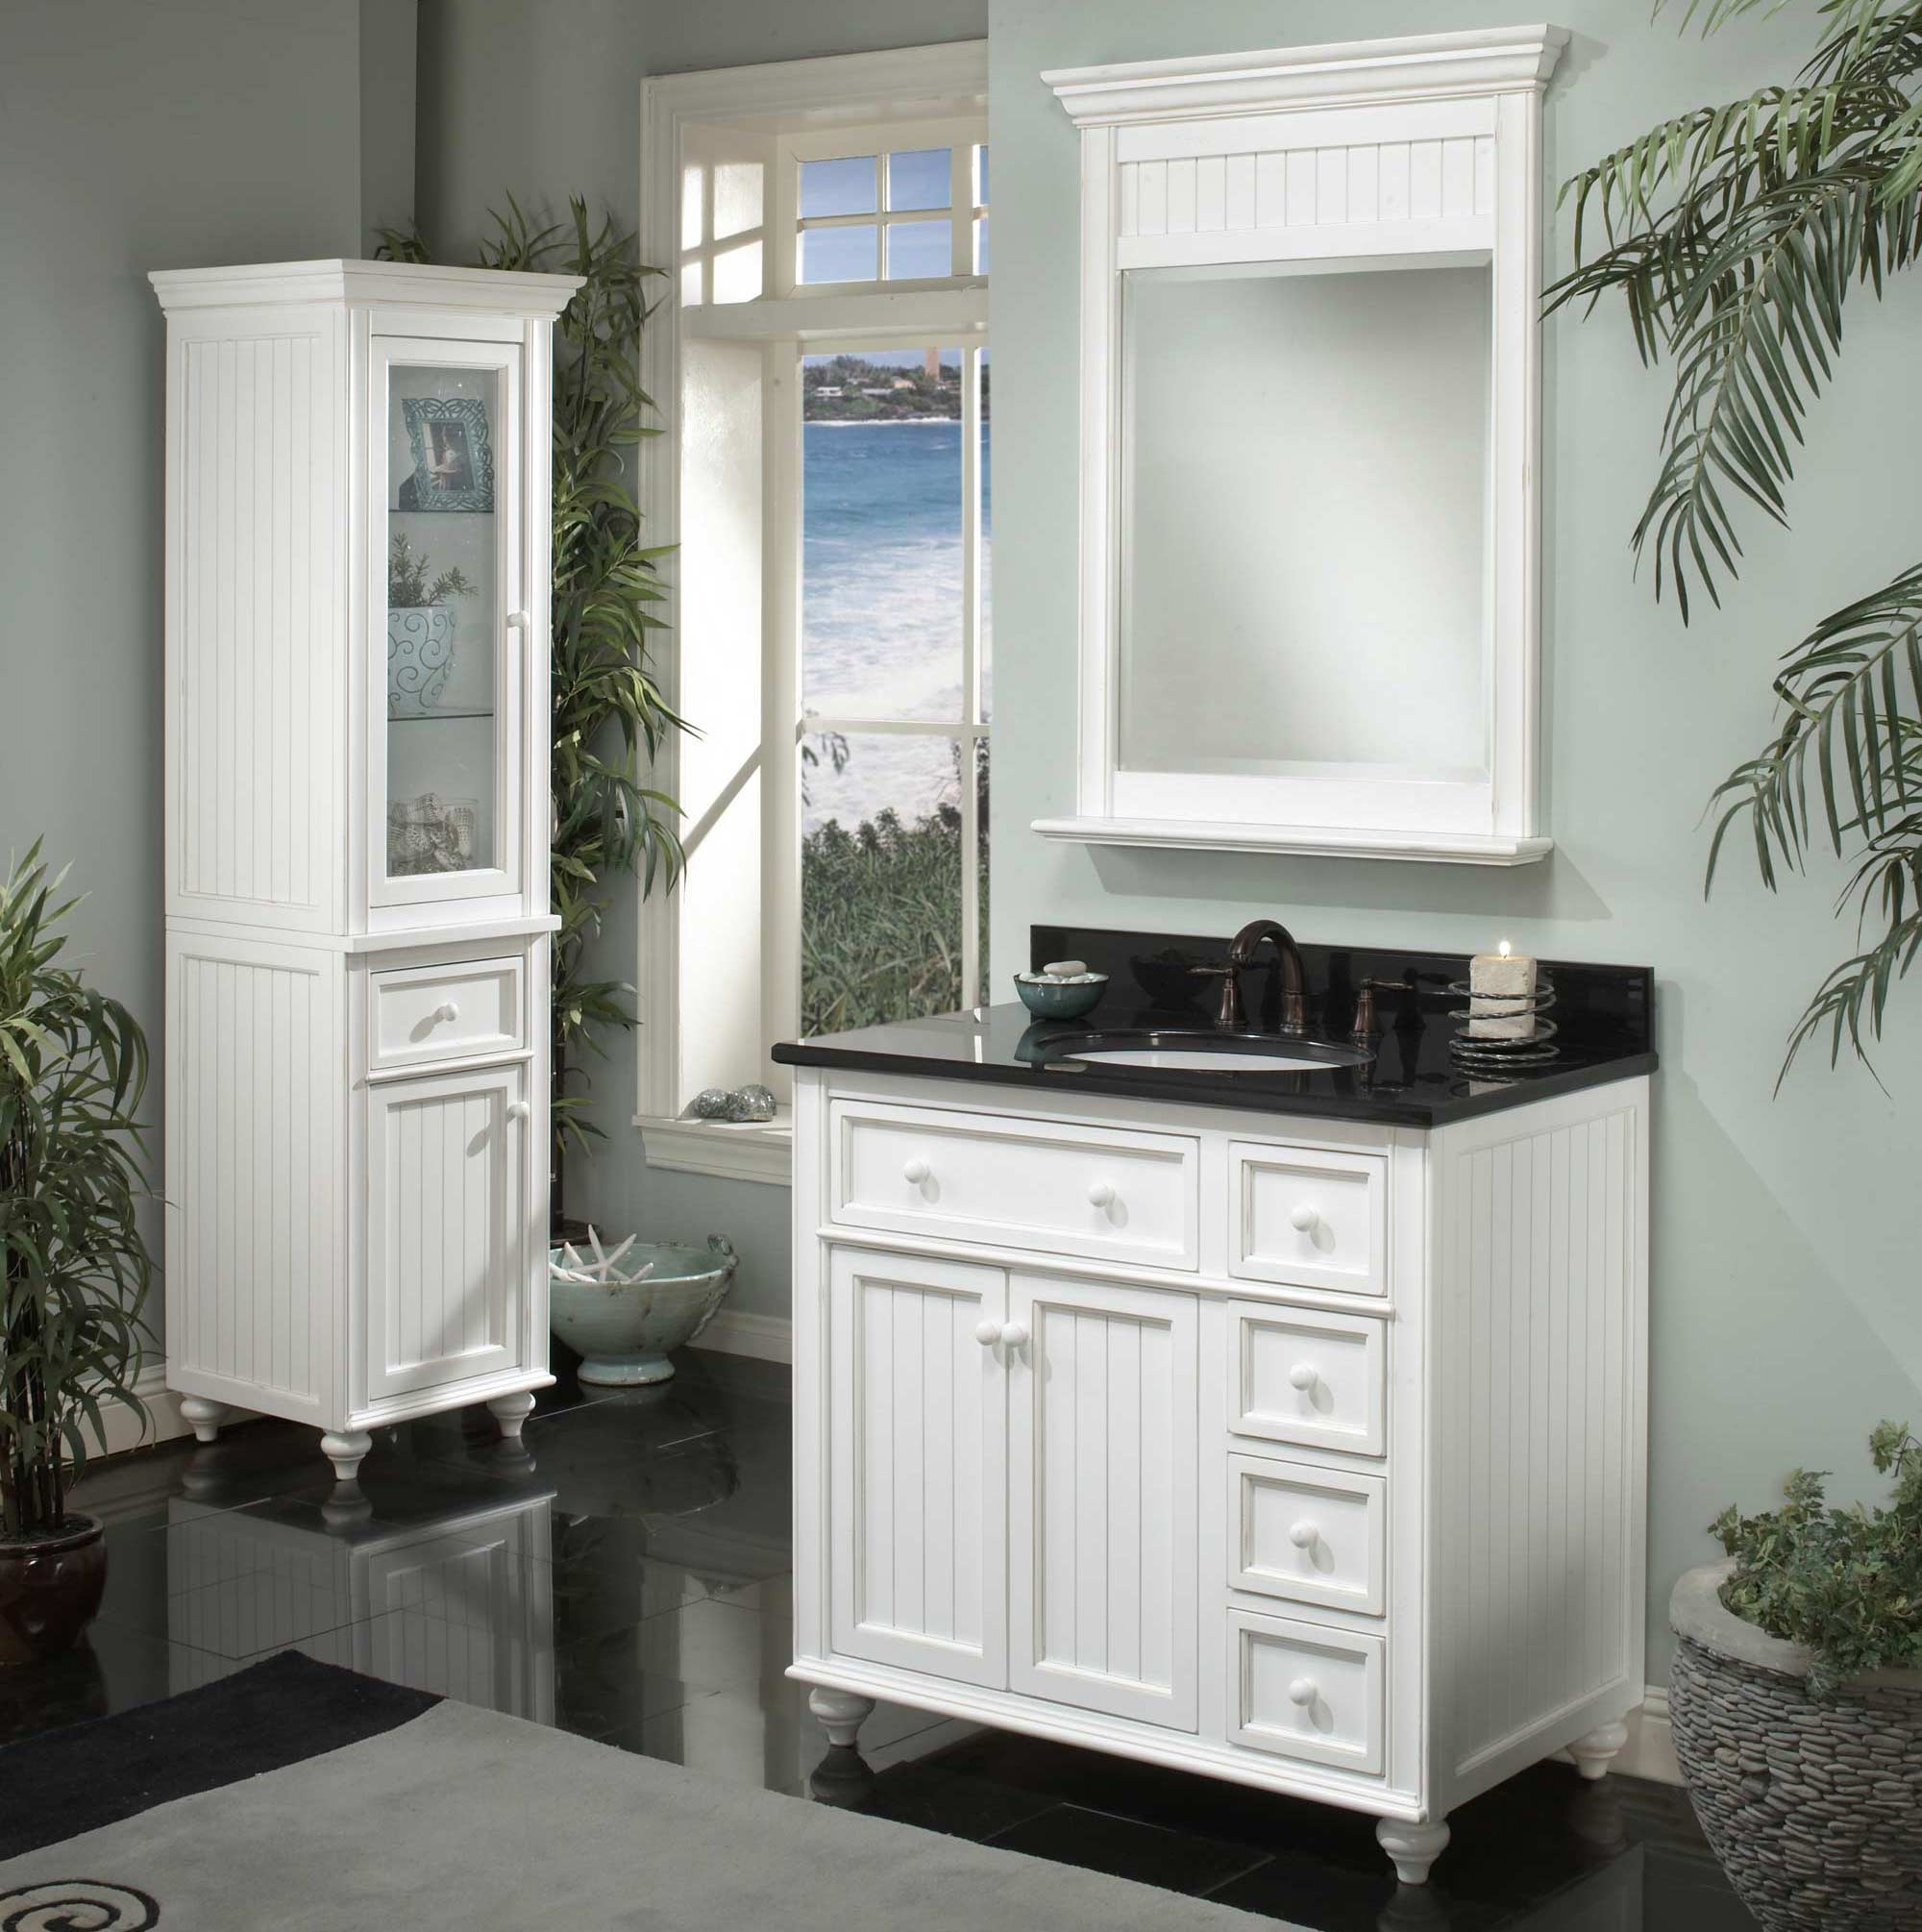 Sagehill Designs CRD White Bayside Cottage Retreat Inch - Cottage style bathroom vanities cabinets for bathroom decor ideas